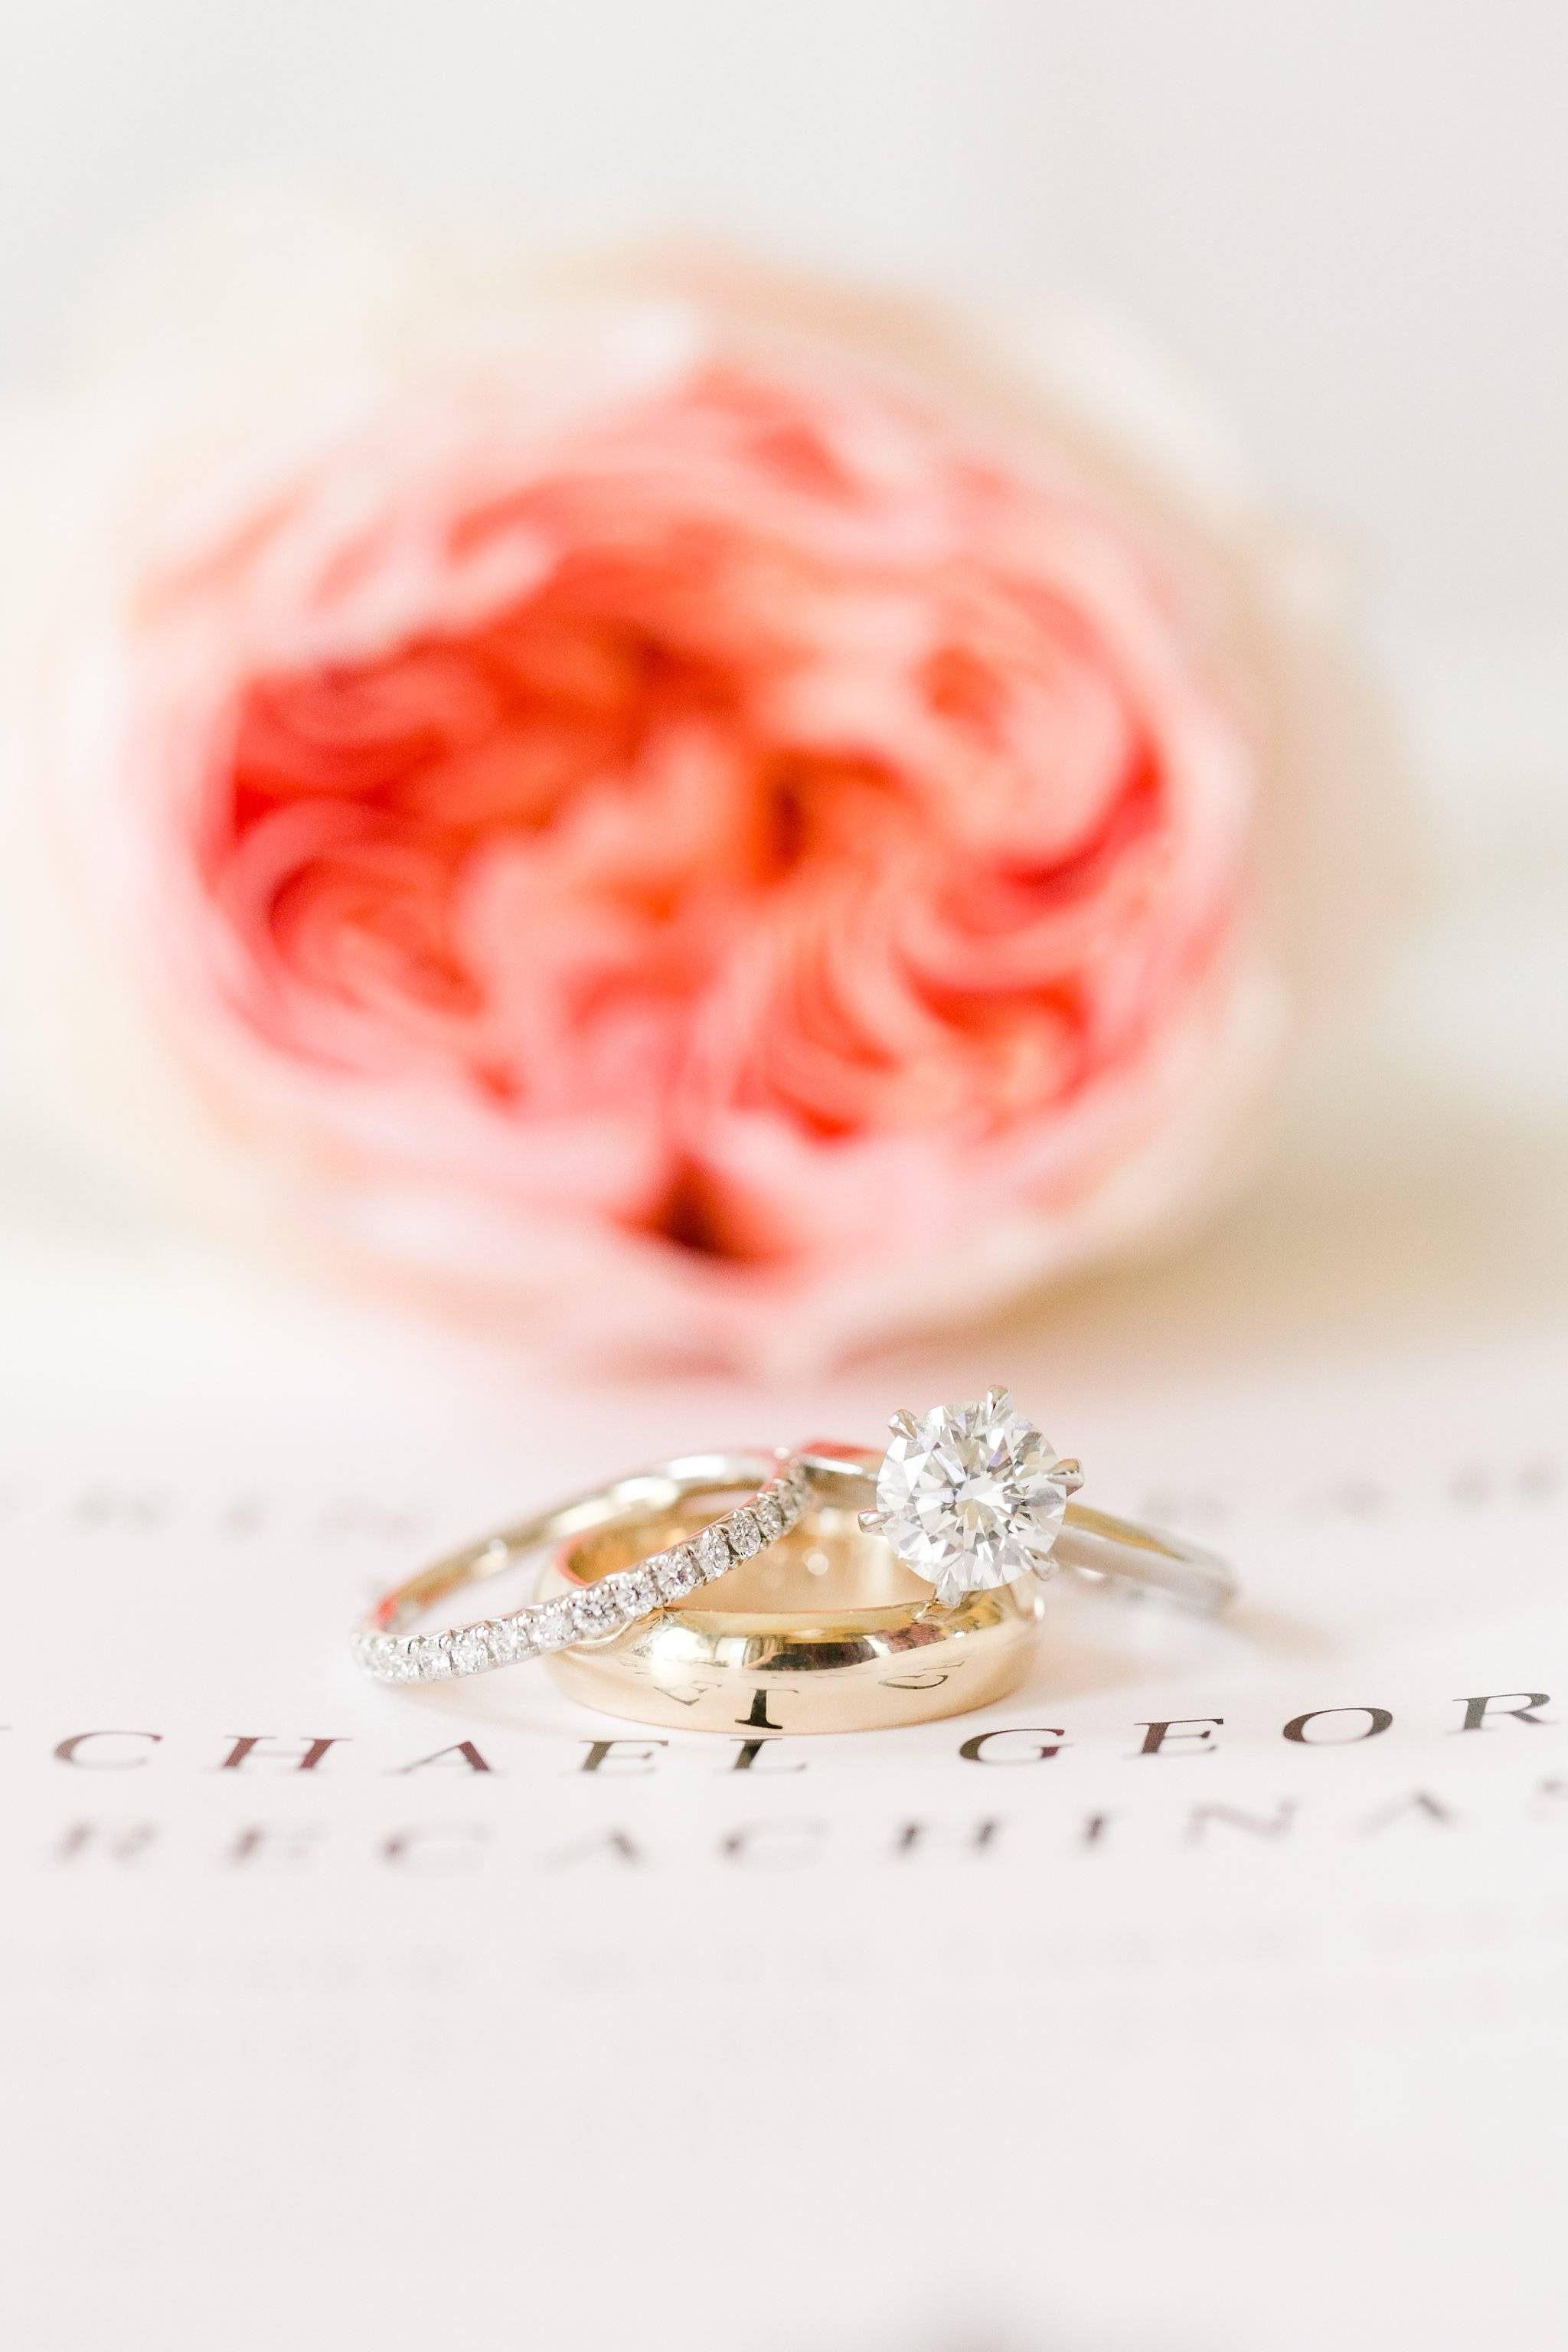 Hotel Monaco Washington Dc Wedding | Erin & Mike Pertaining To Washington Dc Engagement Rings (View 7 of 15)